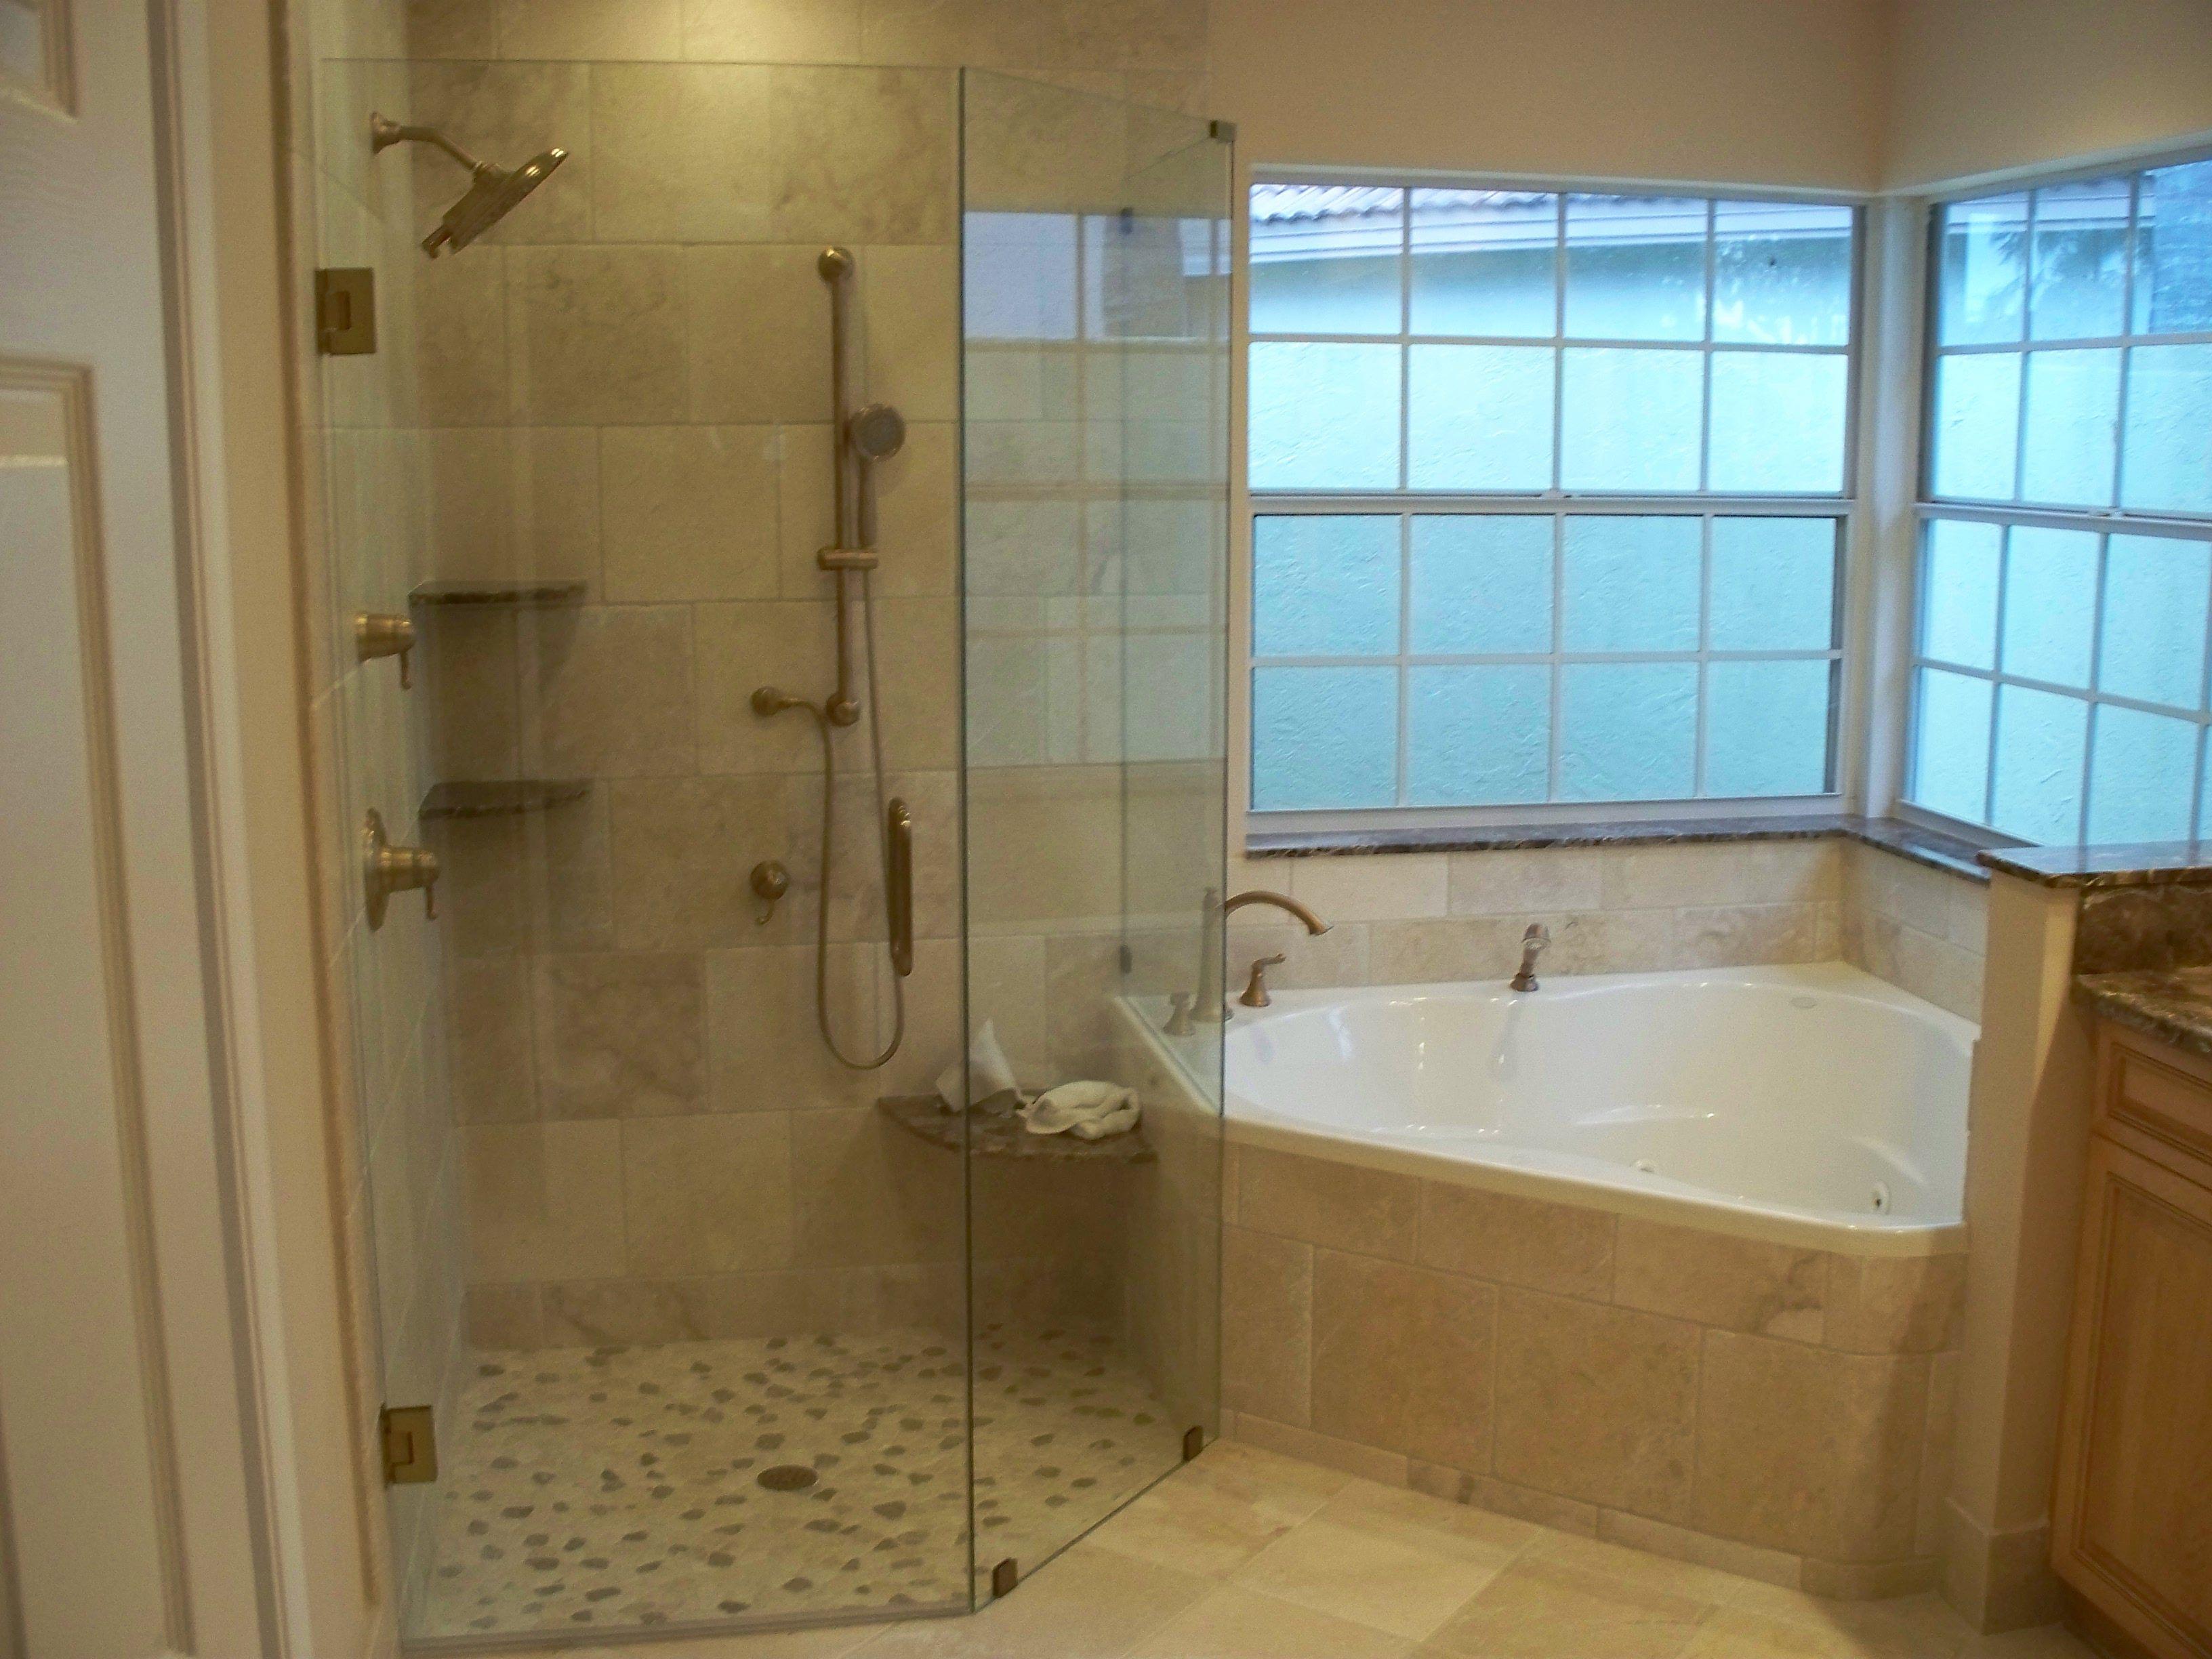 Corner Tub W Larger Walk In Showerdo Not Like The Wall Next To Prepossessing Small Bathroom Corner Tub Inspiration